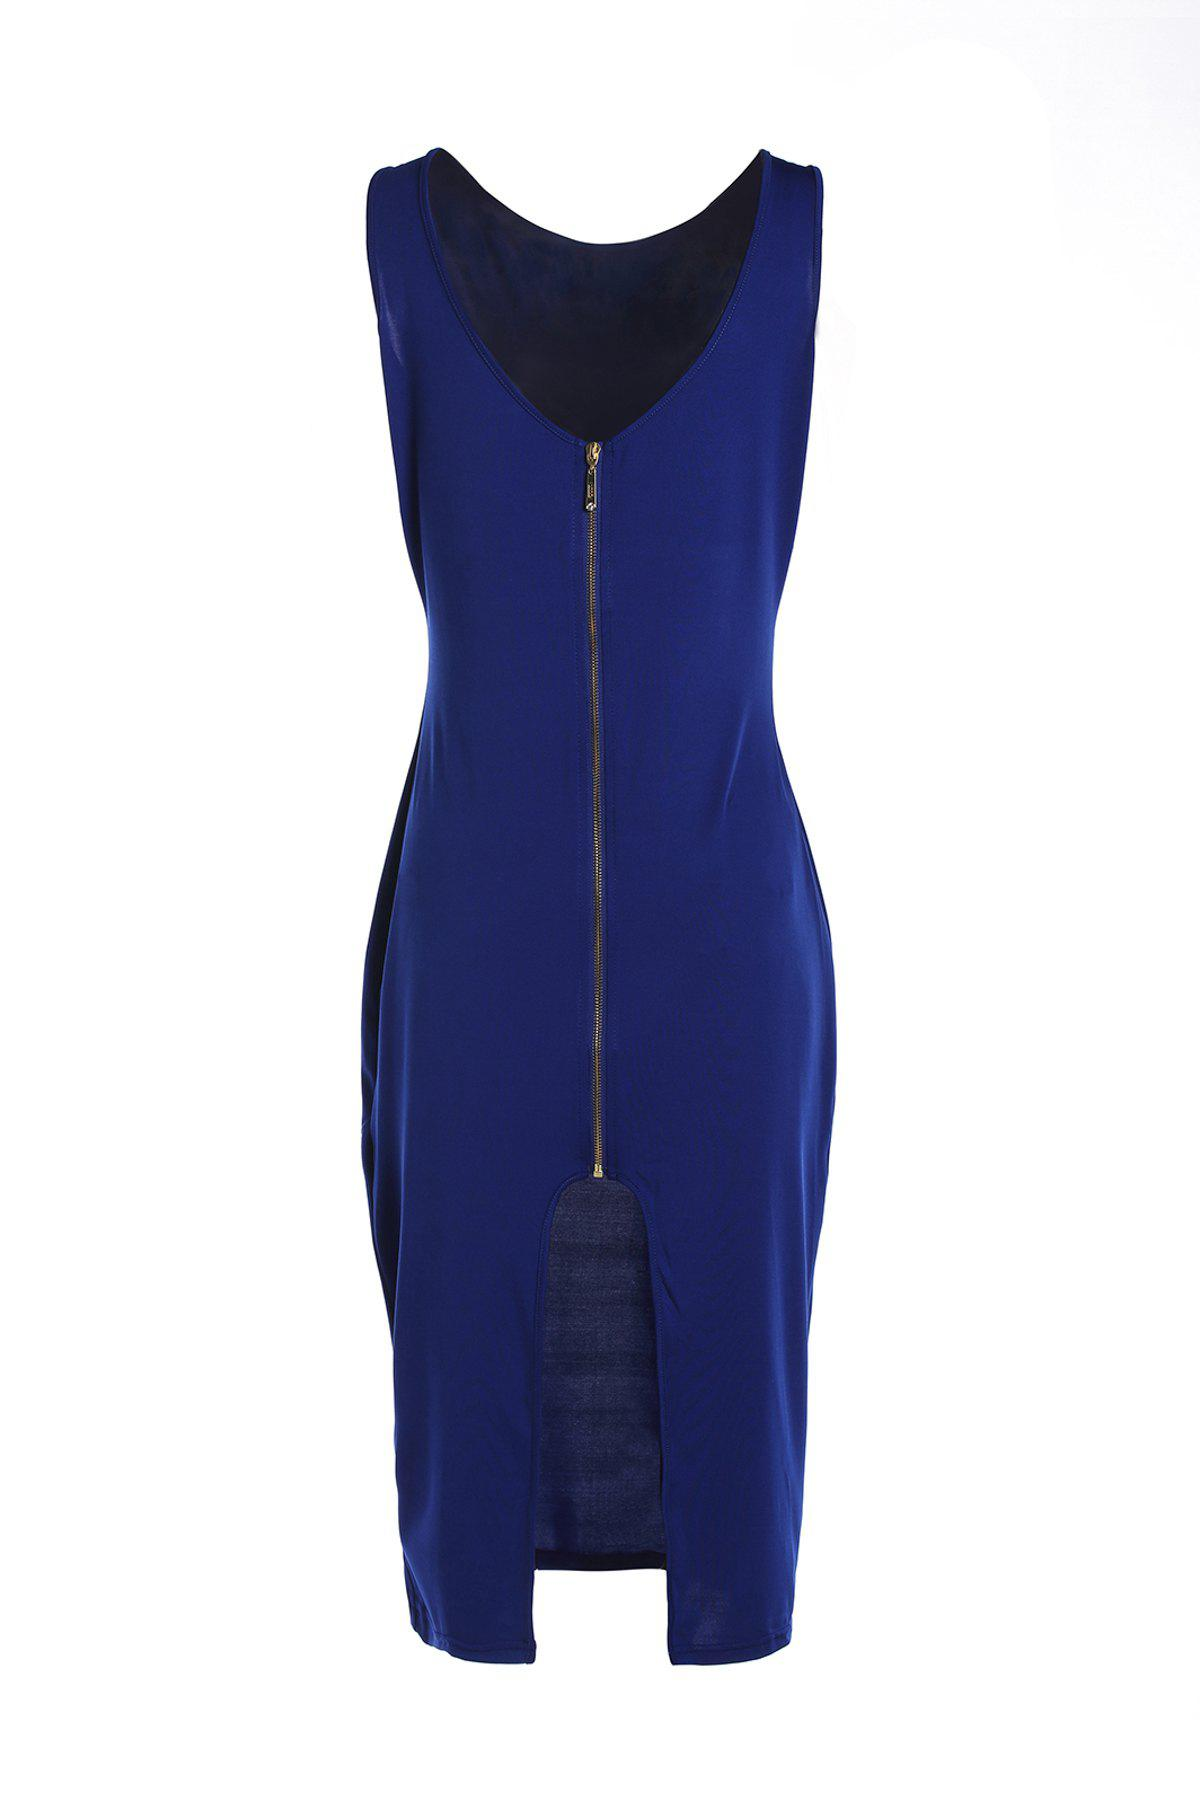 Sexy V-Neck Sleeveless Slit Zippered Bodycon Women's Dress - BLUE ONE SIZE(FIT SIZE XS TO M)